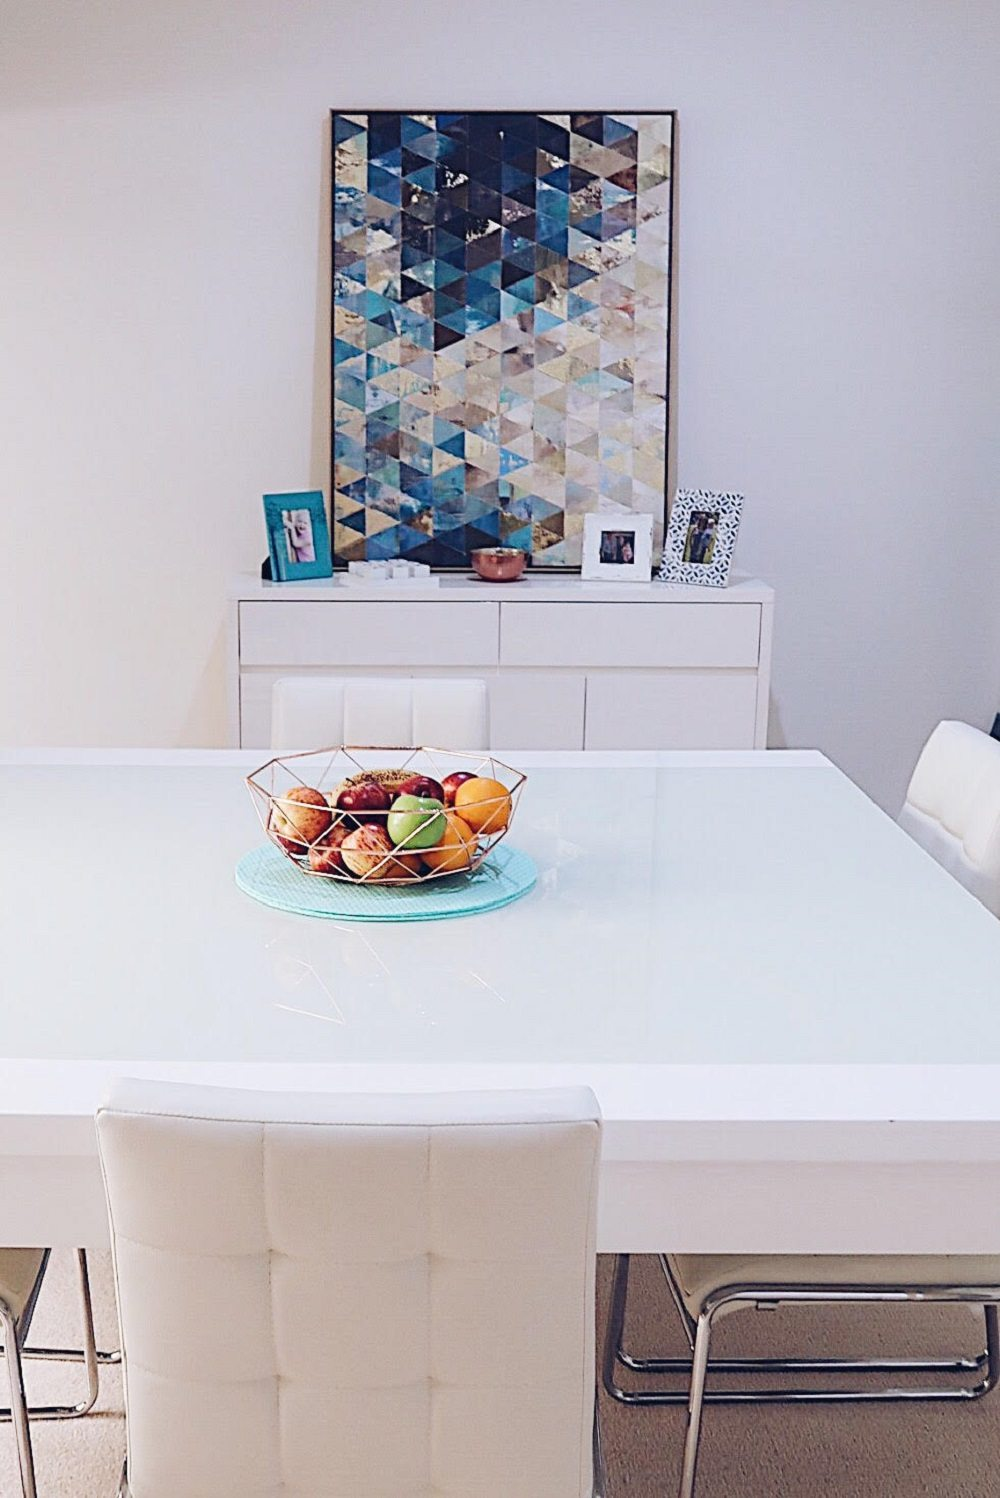 Decorating our new Dining Room with the help of Gumtree - dining table and buffet